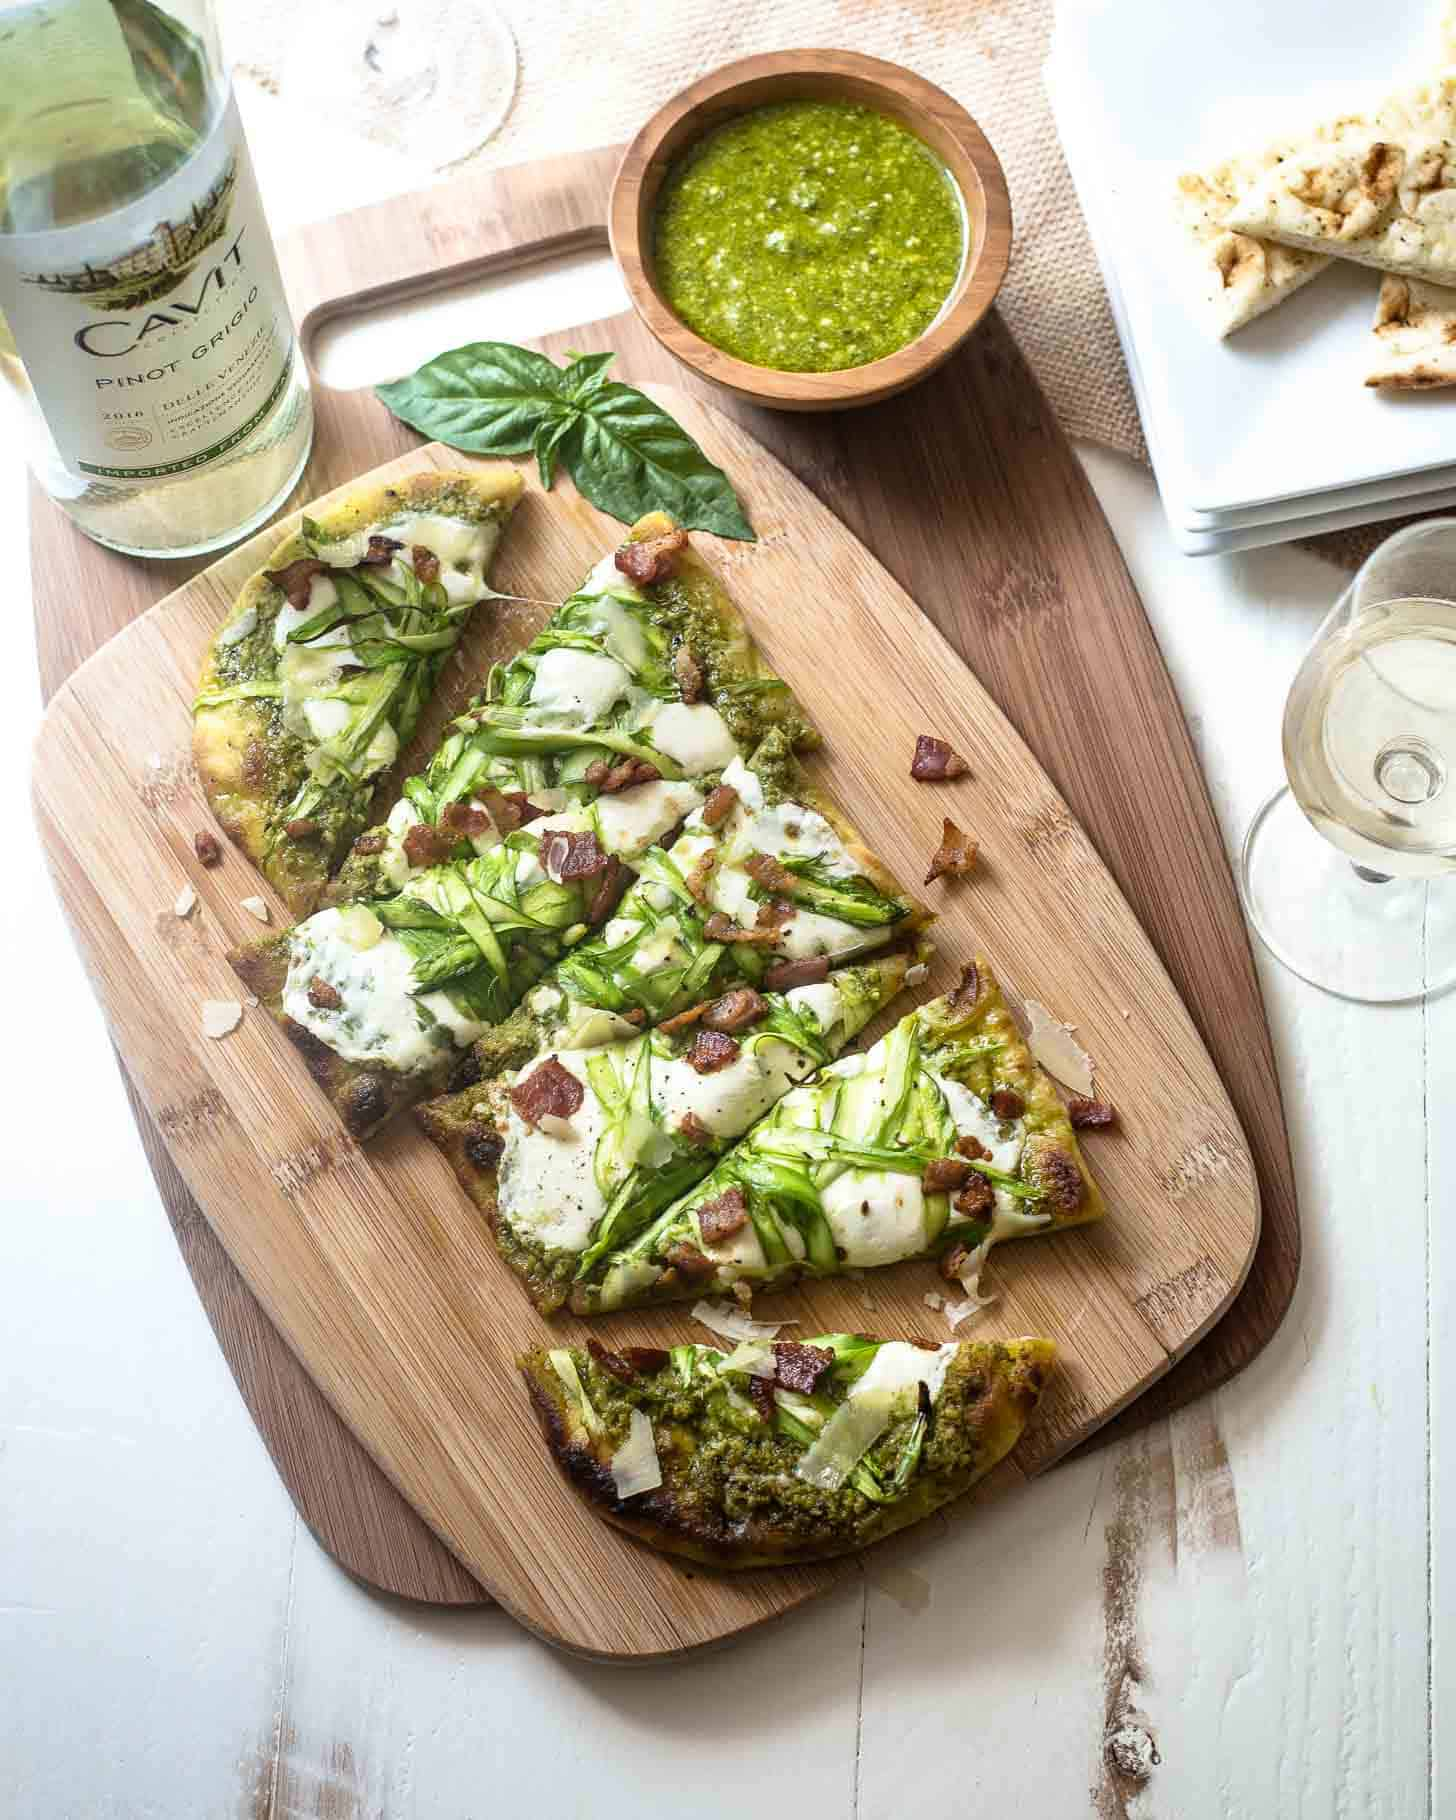 Pesto Flatbread with Shaved Asparagus and Bacon sliced on a wooden cutting board